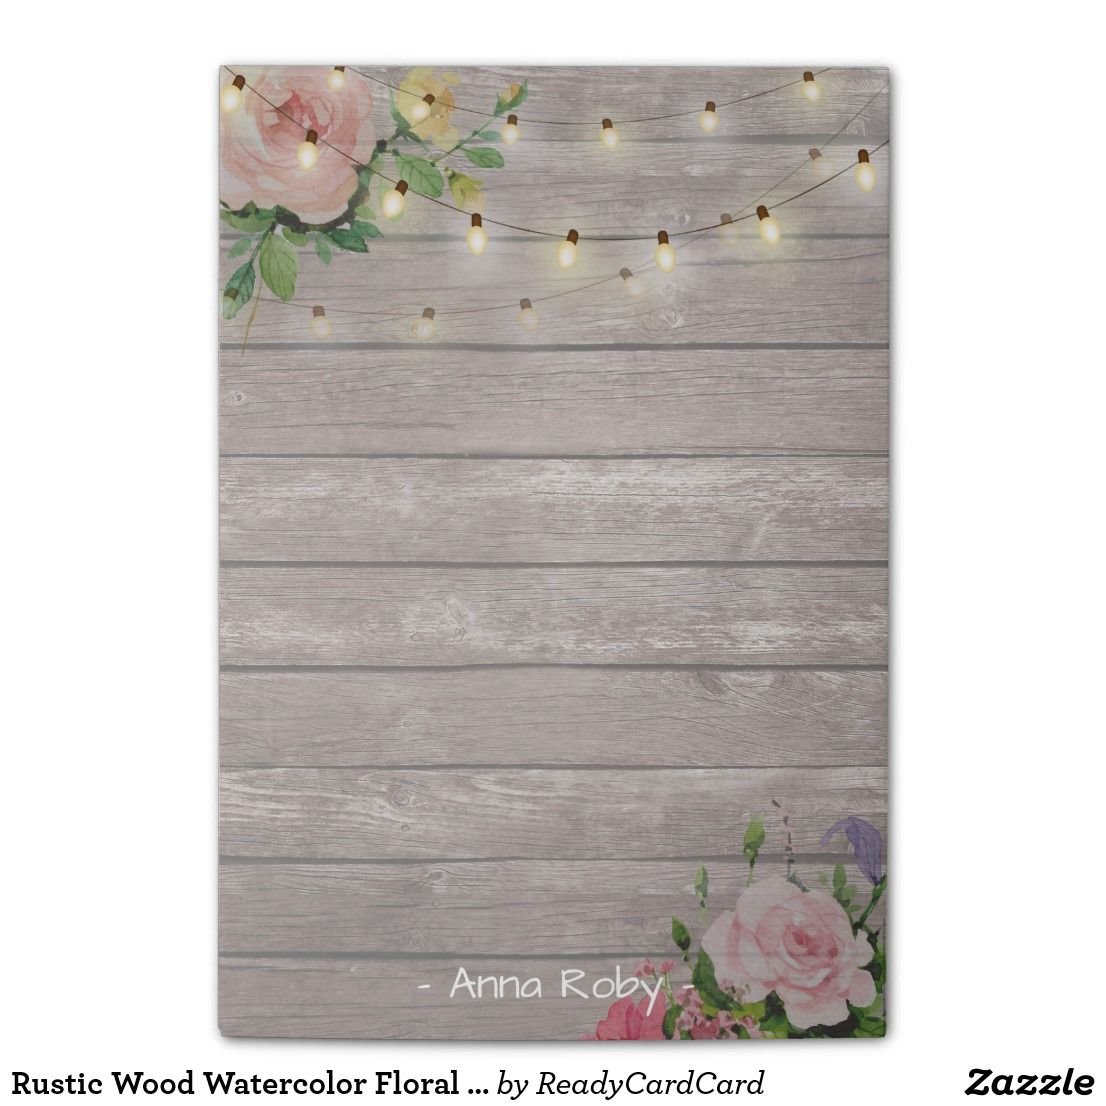 Rustic Wood Watercolor Floral Elegant String Light Post It Notes Vintage And